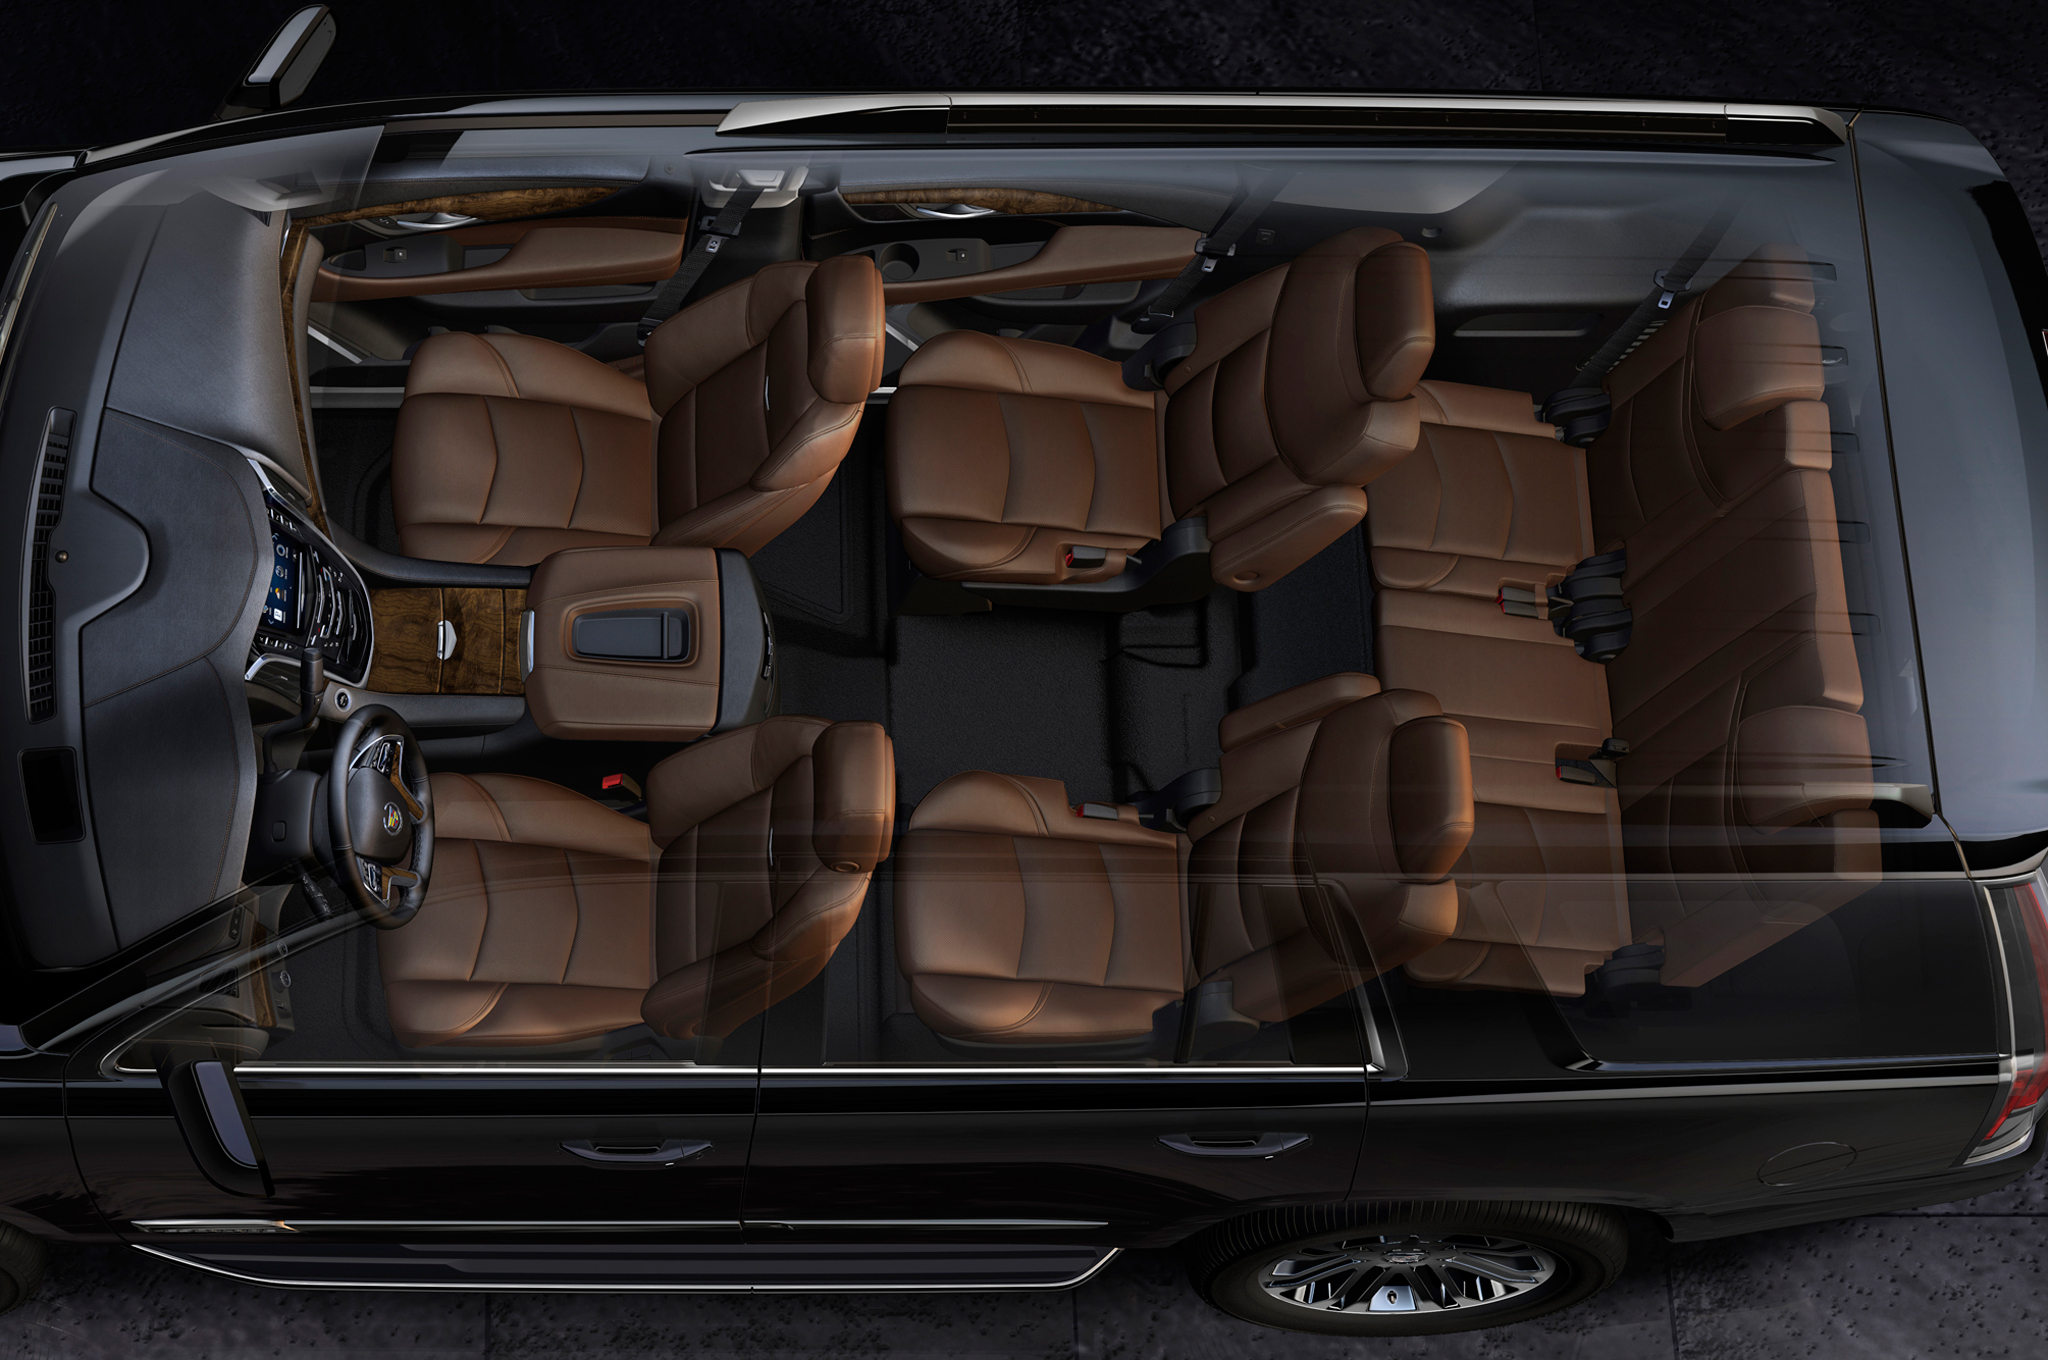 2015 cadillac escalade car statement. Black Bedroom Furniture Sets. Home Design Ideas